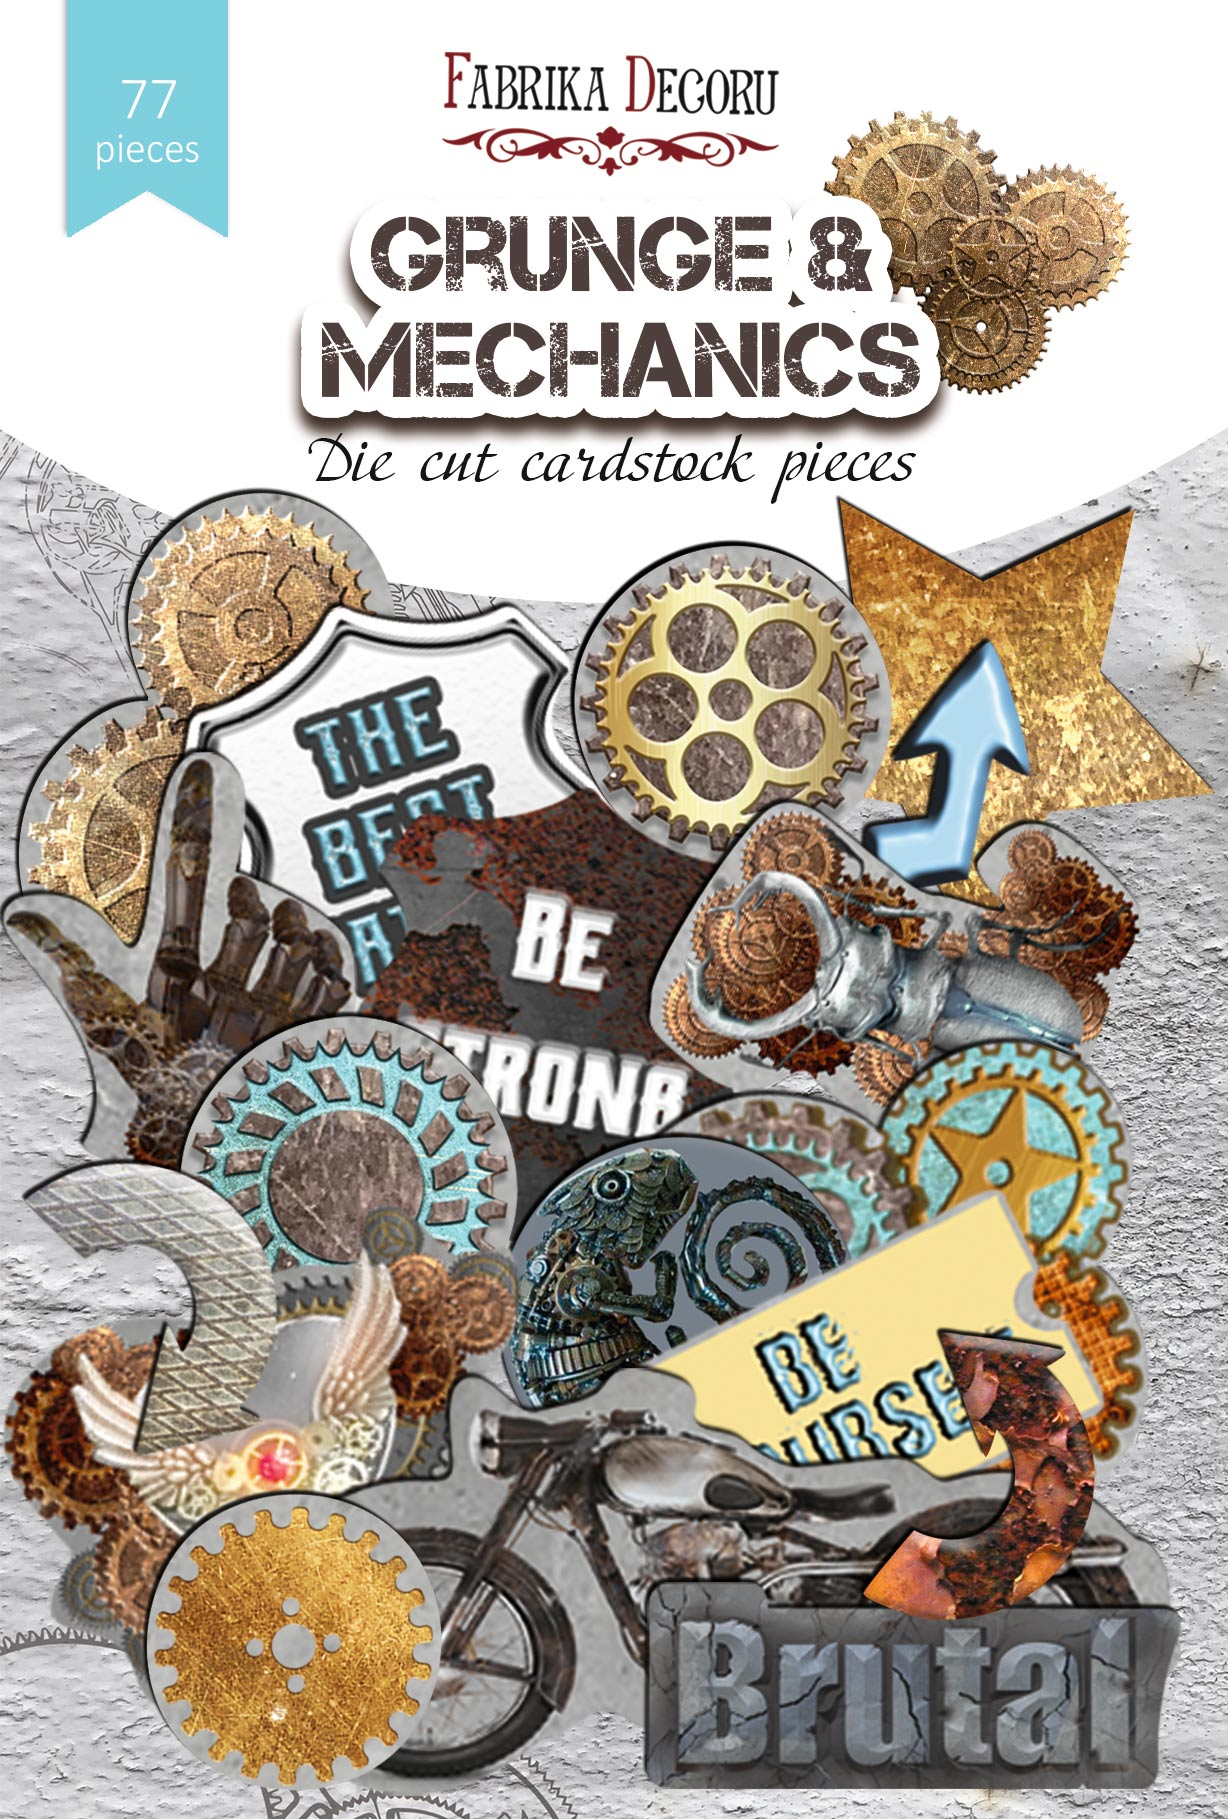 Die Cuts Fabrika Decoru Grunge & Mechanics